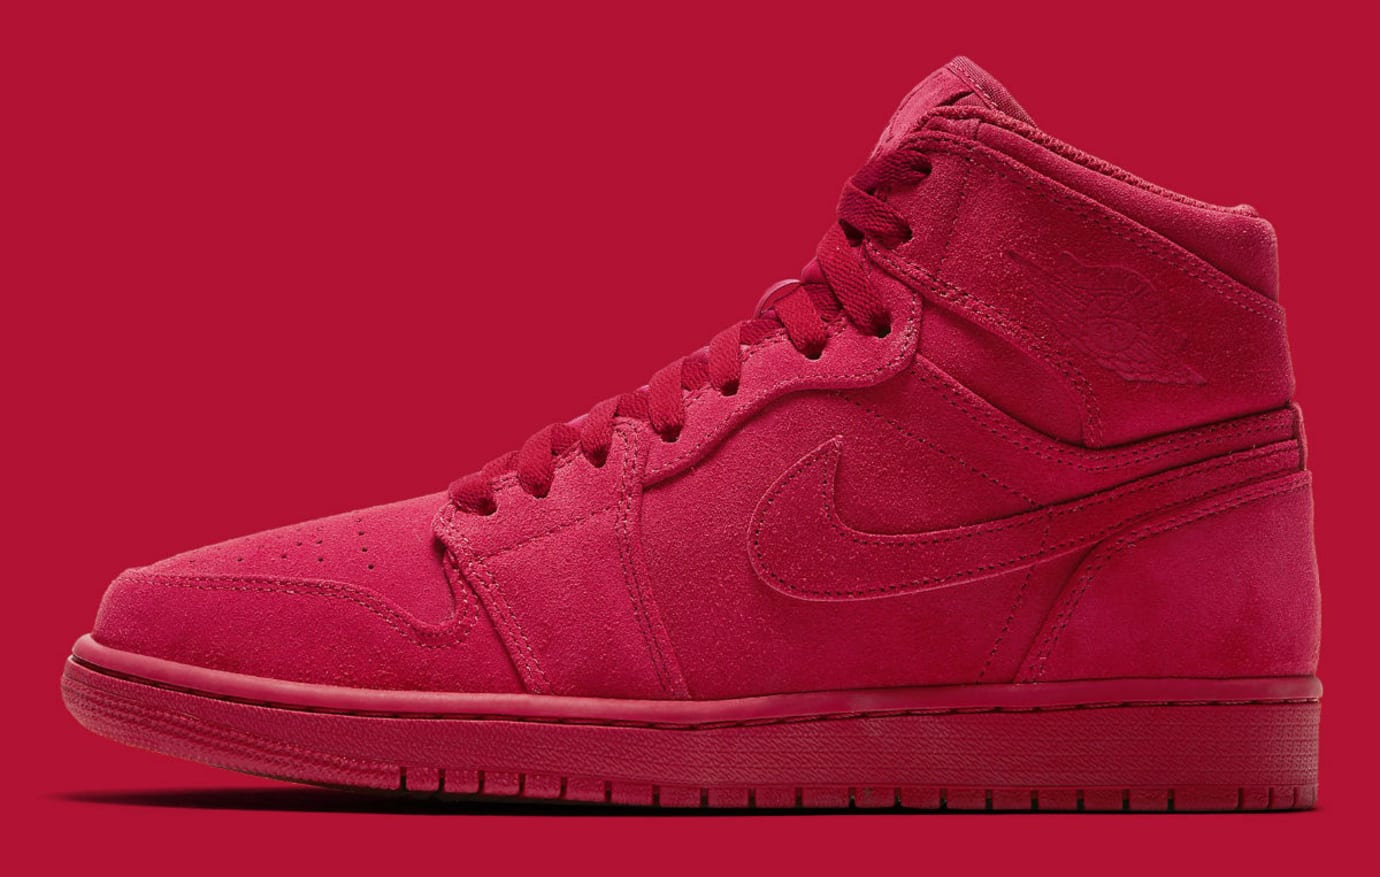 4bdc2f29d4e4 Air Jordan 1 High Red Suede Release Date Profile 332550-603